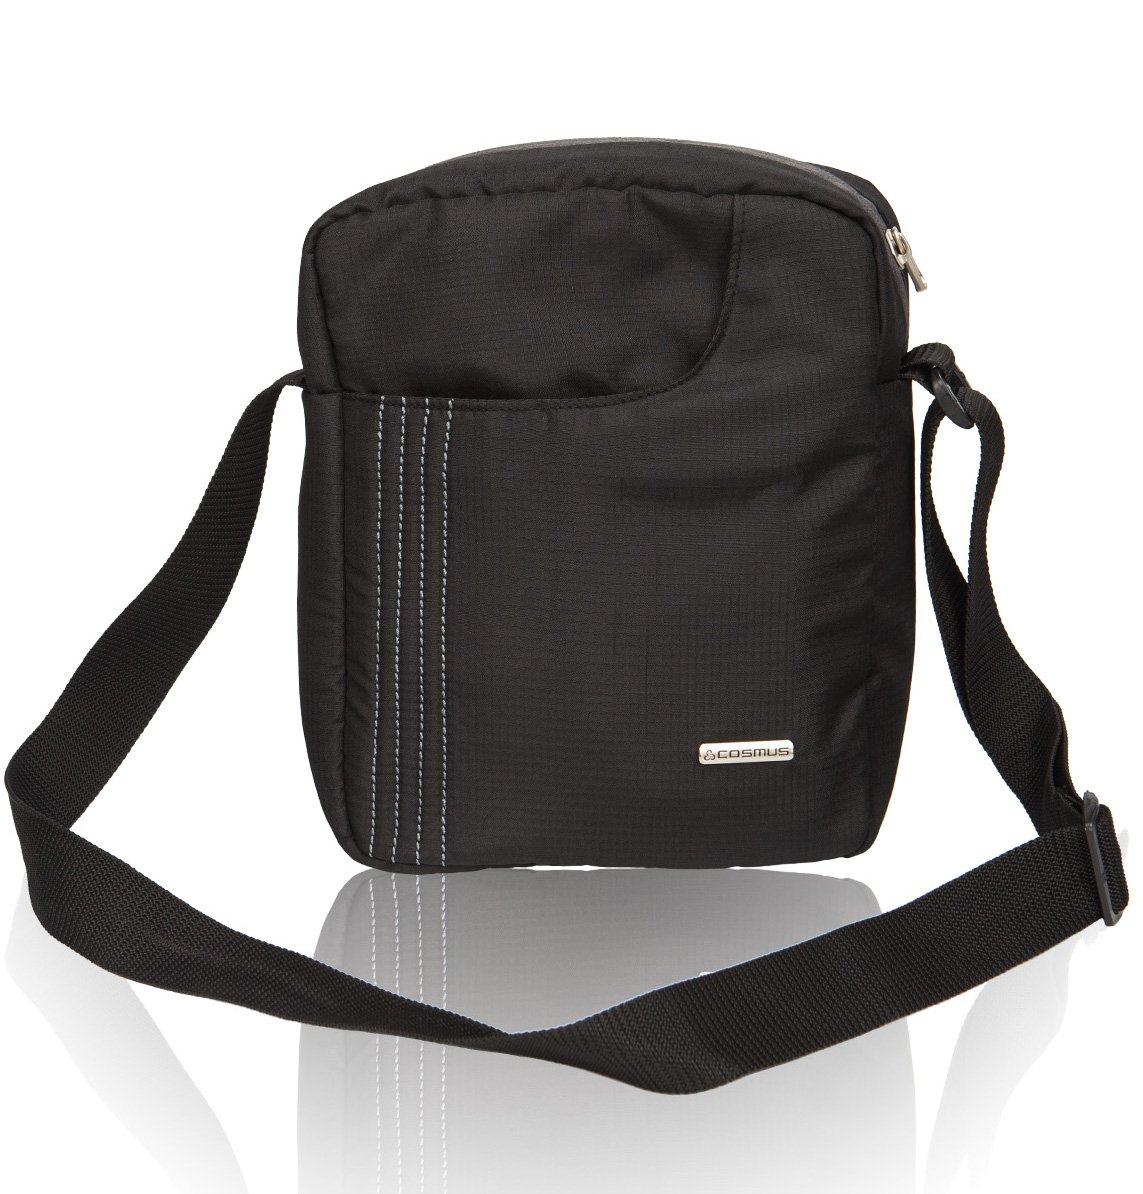 COSMUS Polyester Black Sling & Cross-Body Bag For Unisex product image